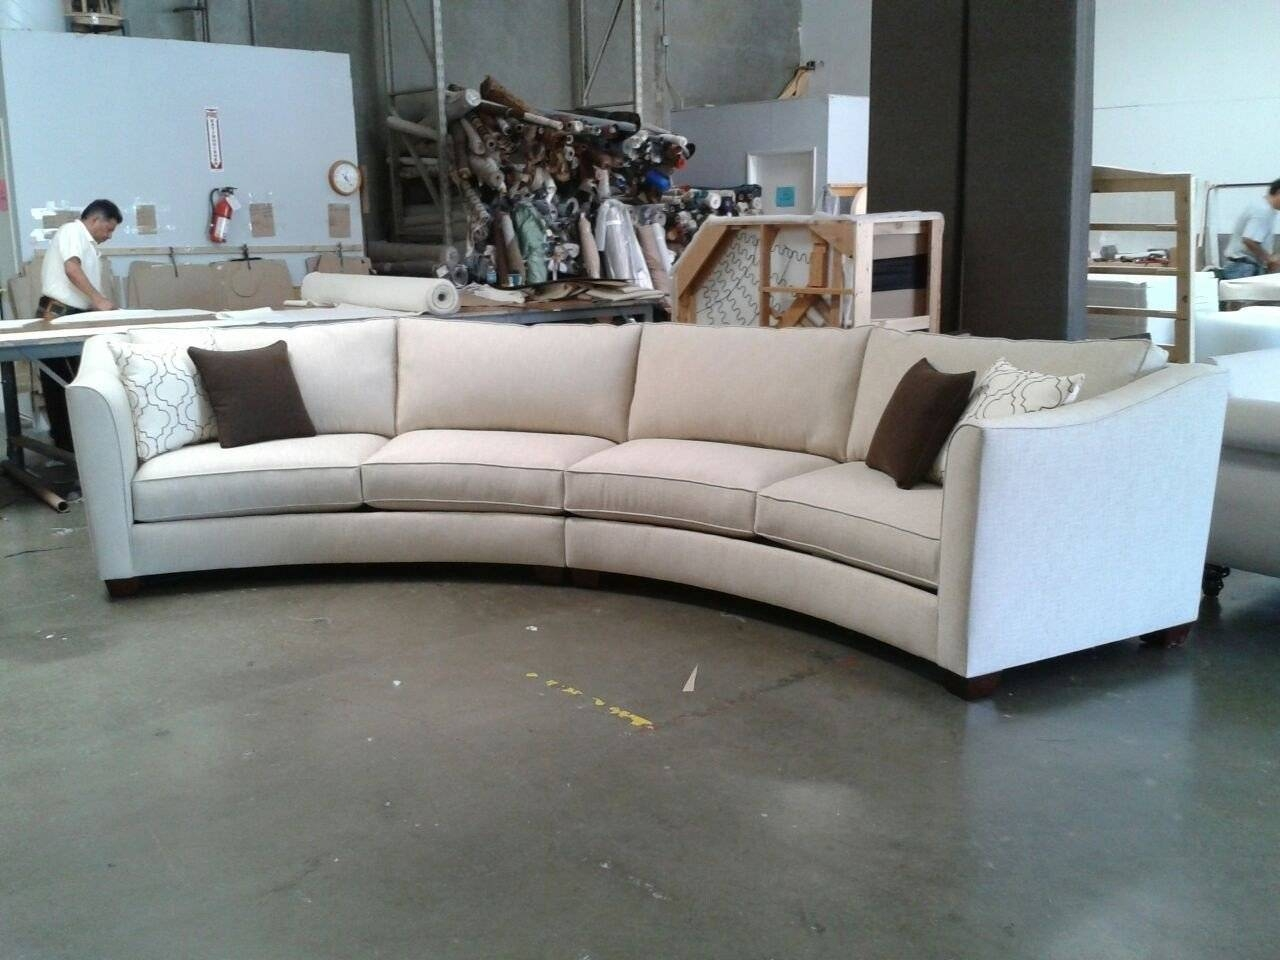 Curved Sectional Sofa: Glamour For Interior — Home Design within Circle Sectional Sofa (Image 6 of 30)